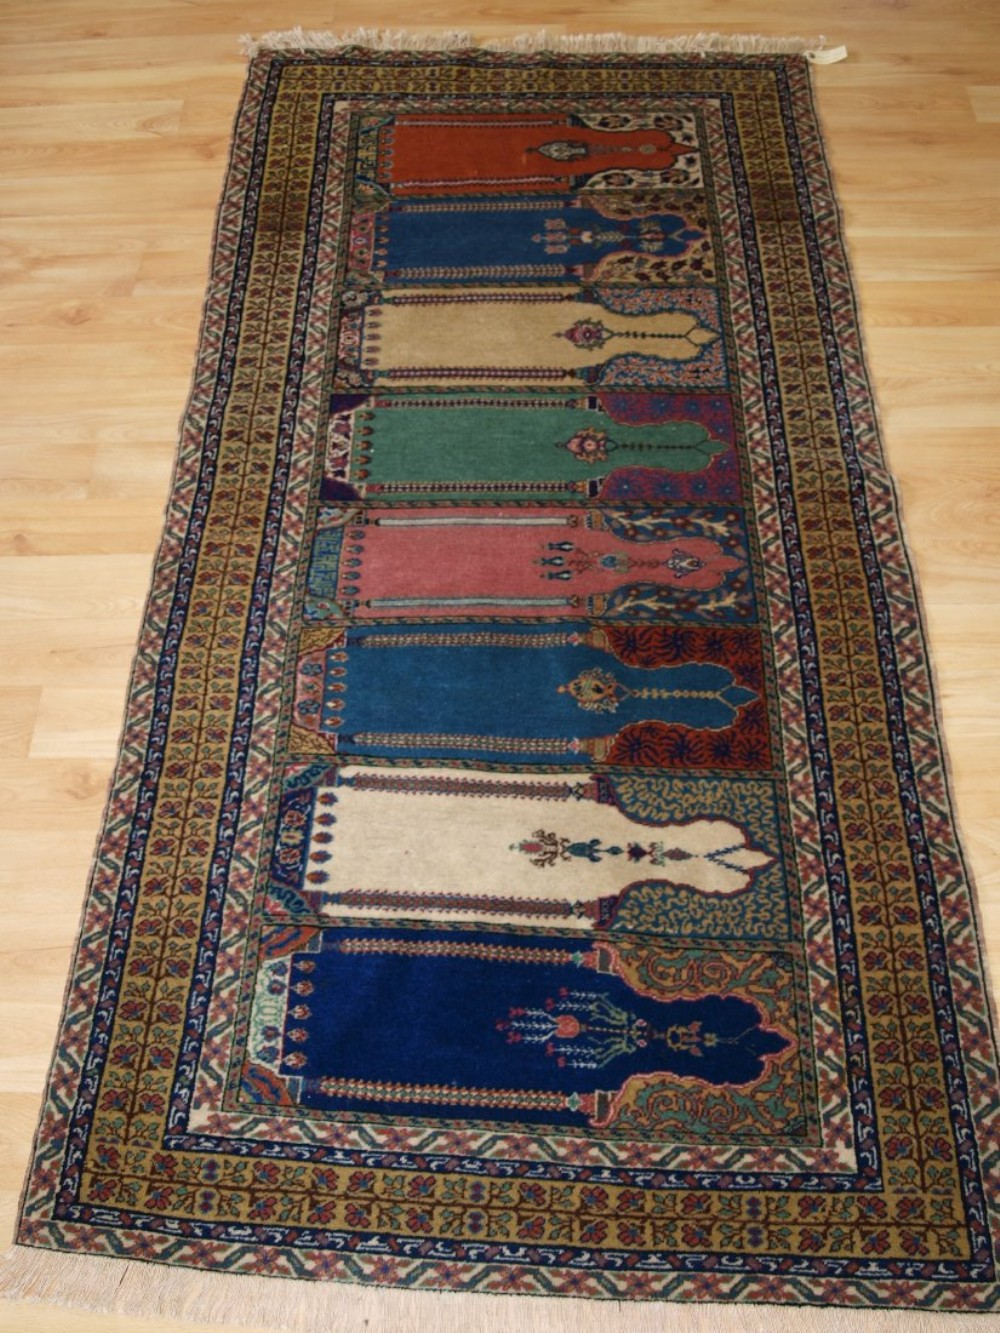 old turkish kayseri prayer rug in saf design circa 192030